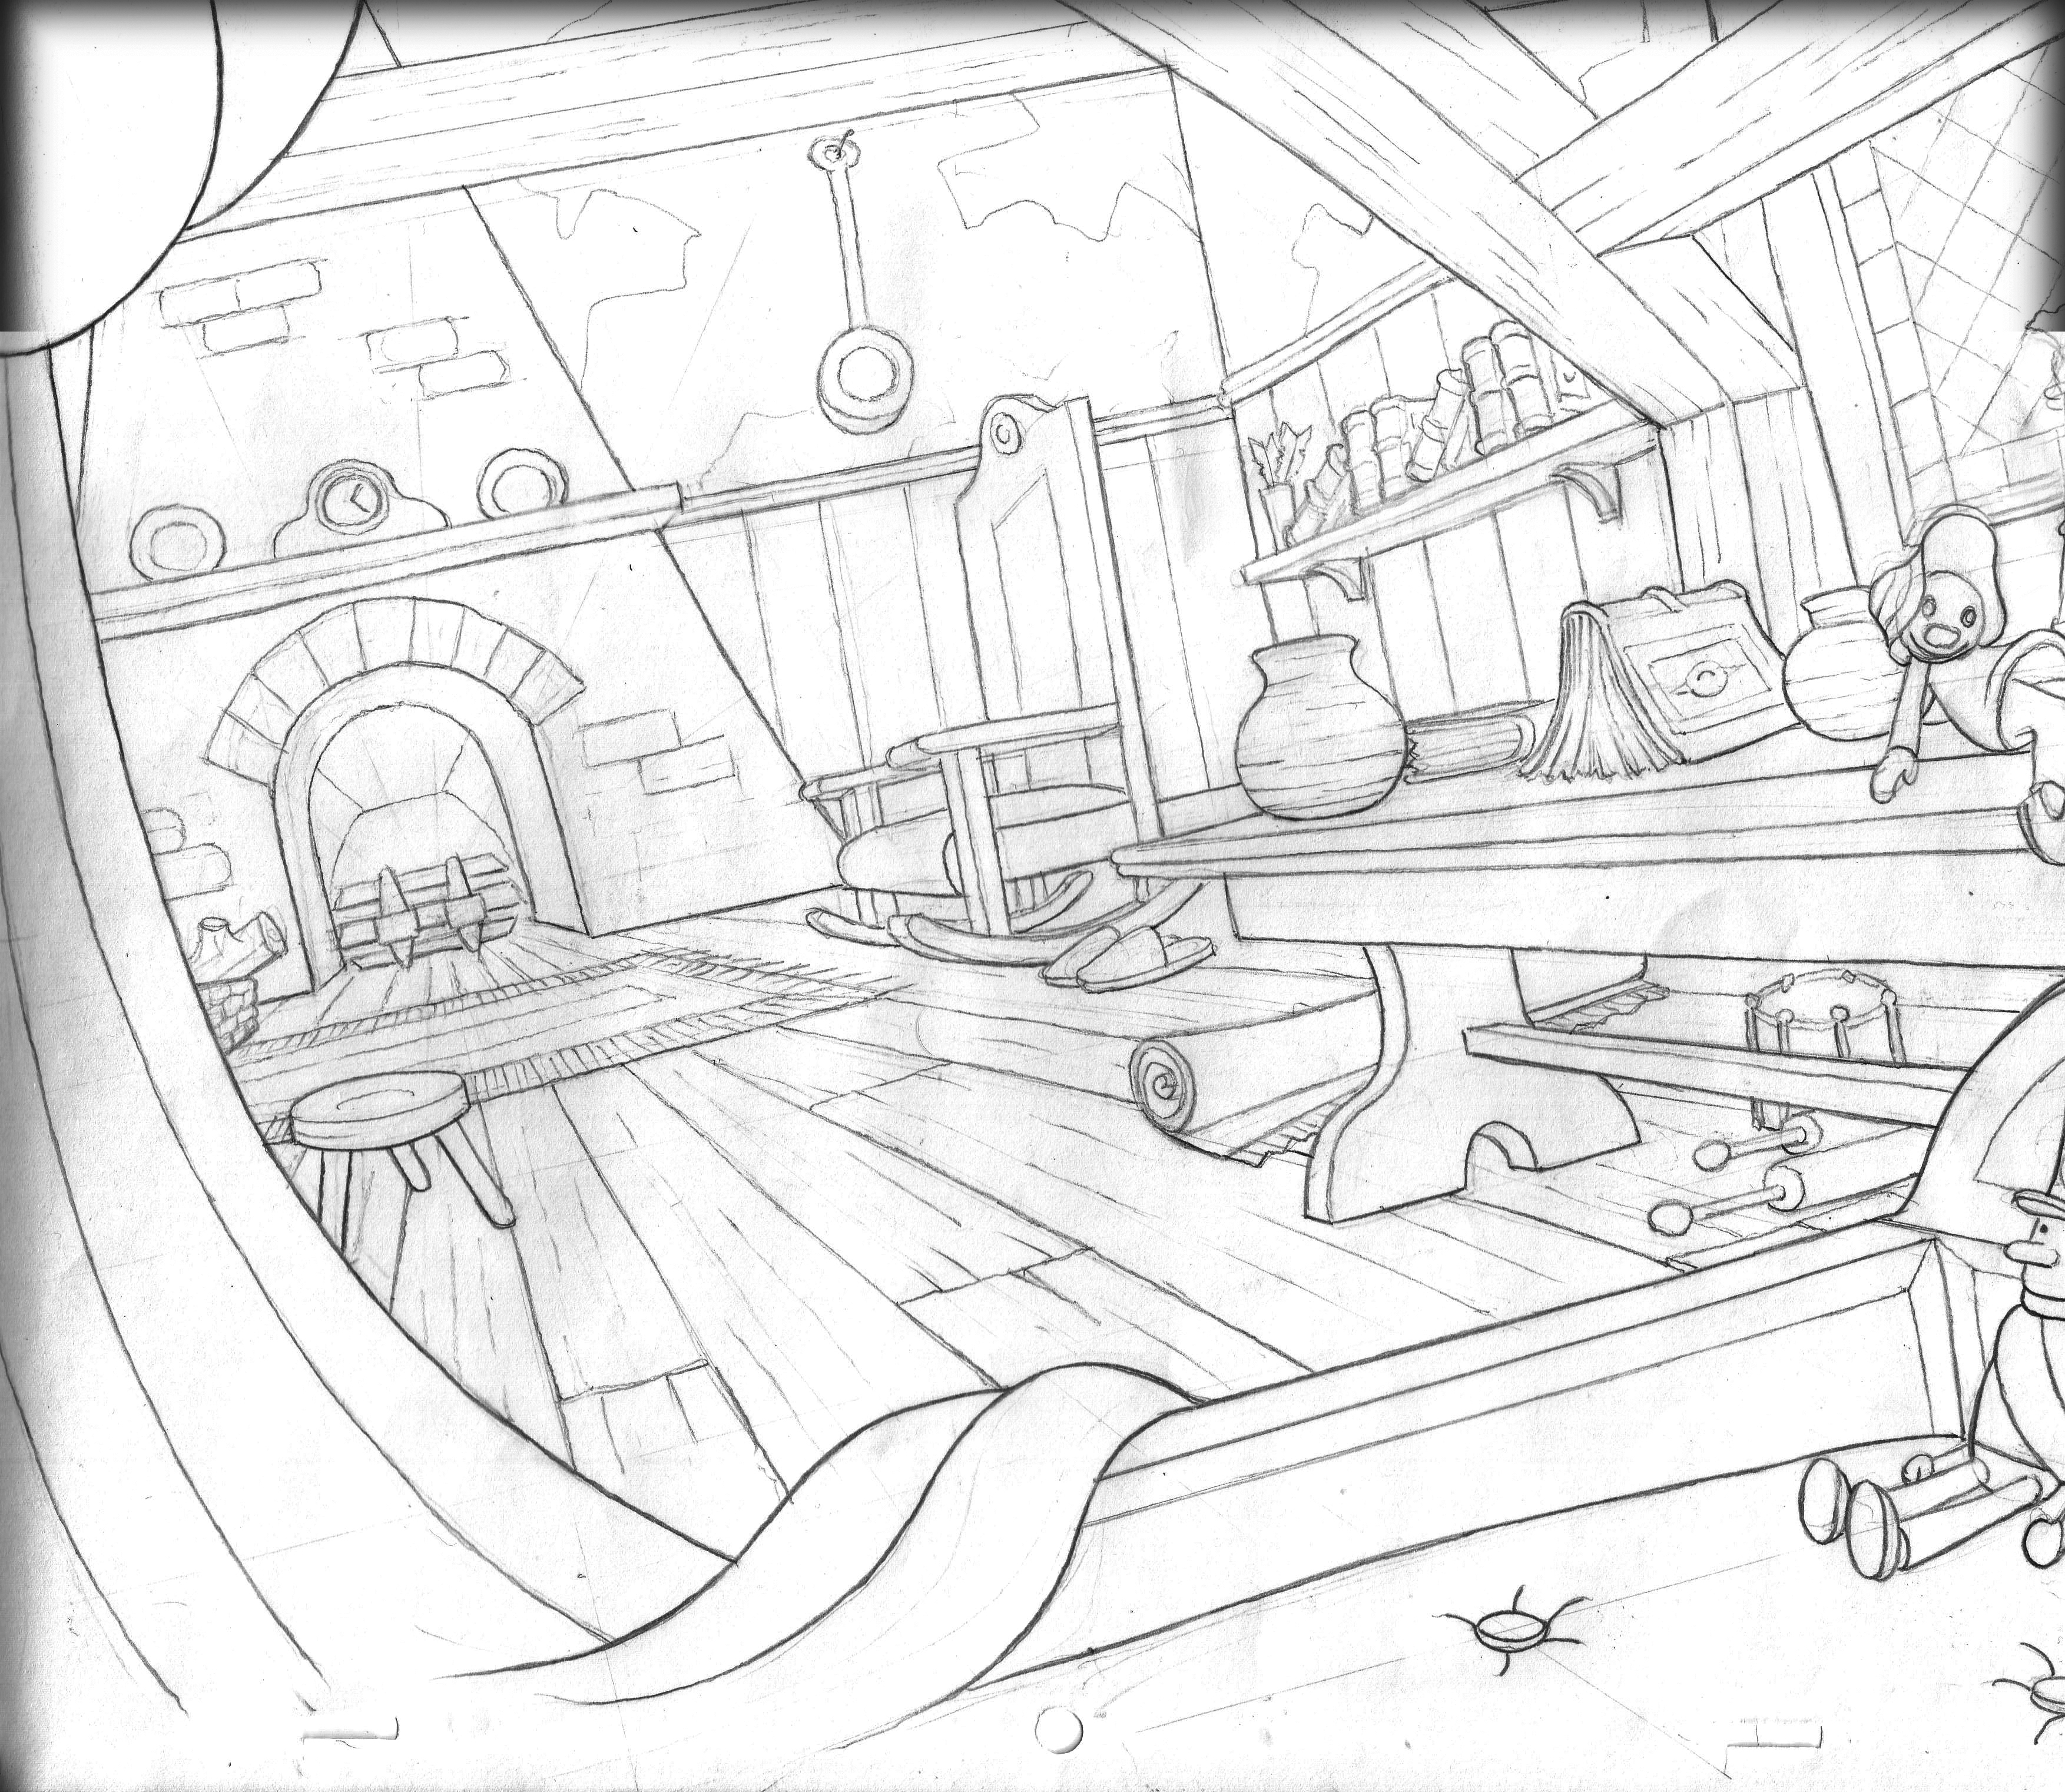 Interior design drawings perspective Color 860x538 Interior Design Drawings Perspective 3507x3043 Interior Designperspective Getdrawingscom Bedroom Perspective Drawing At Getdrawingscom Free For Personal